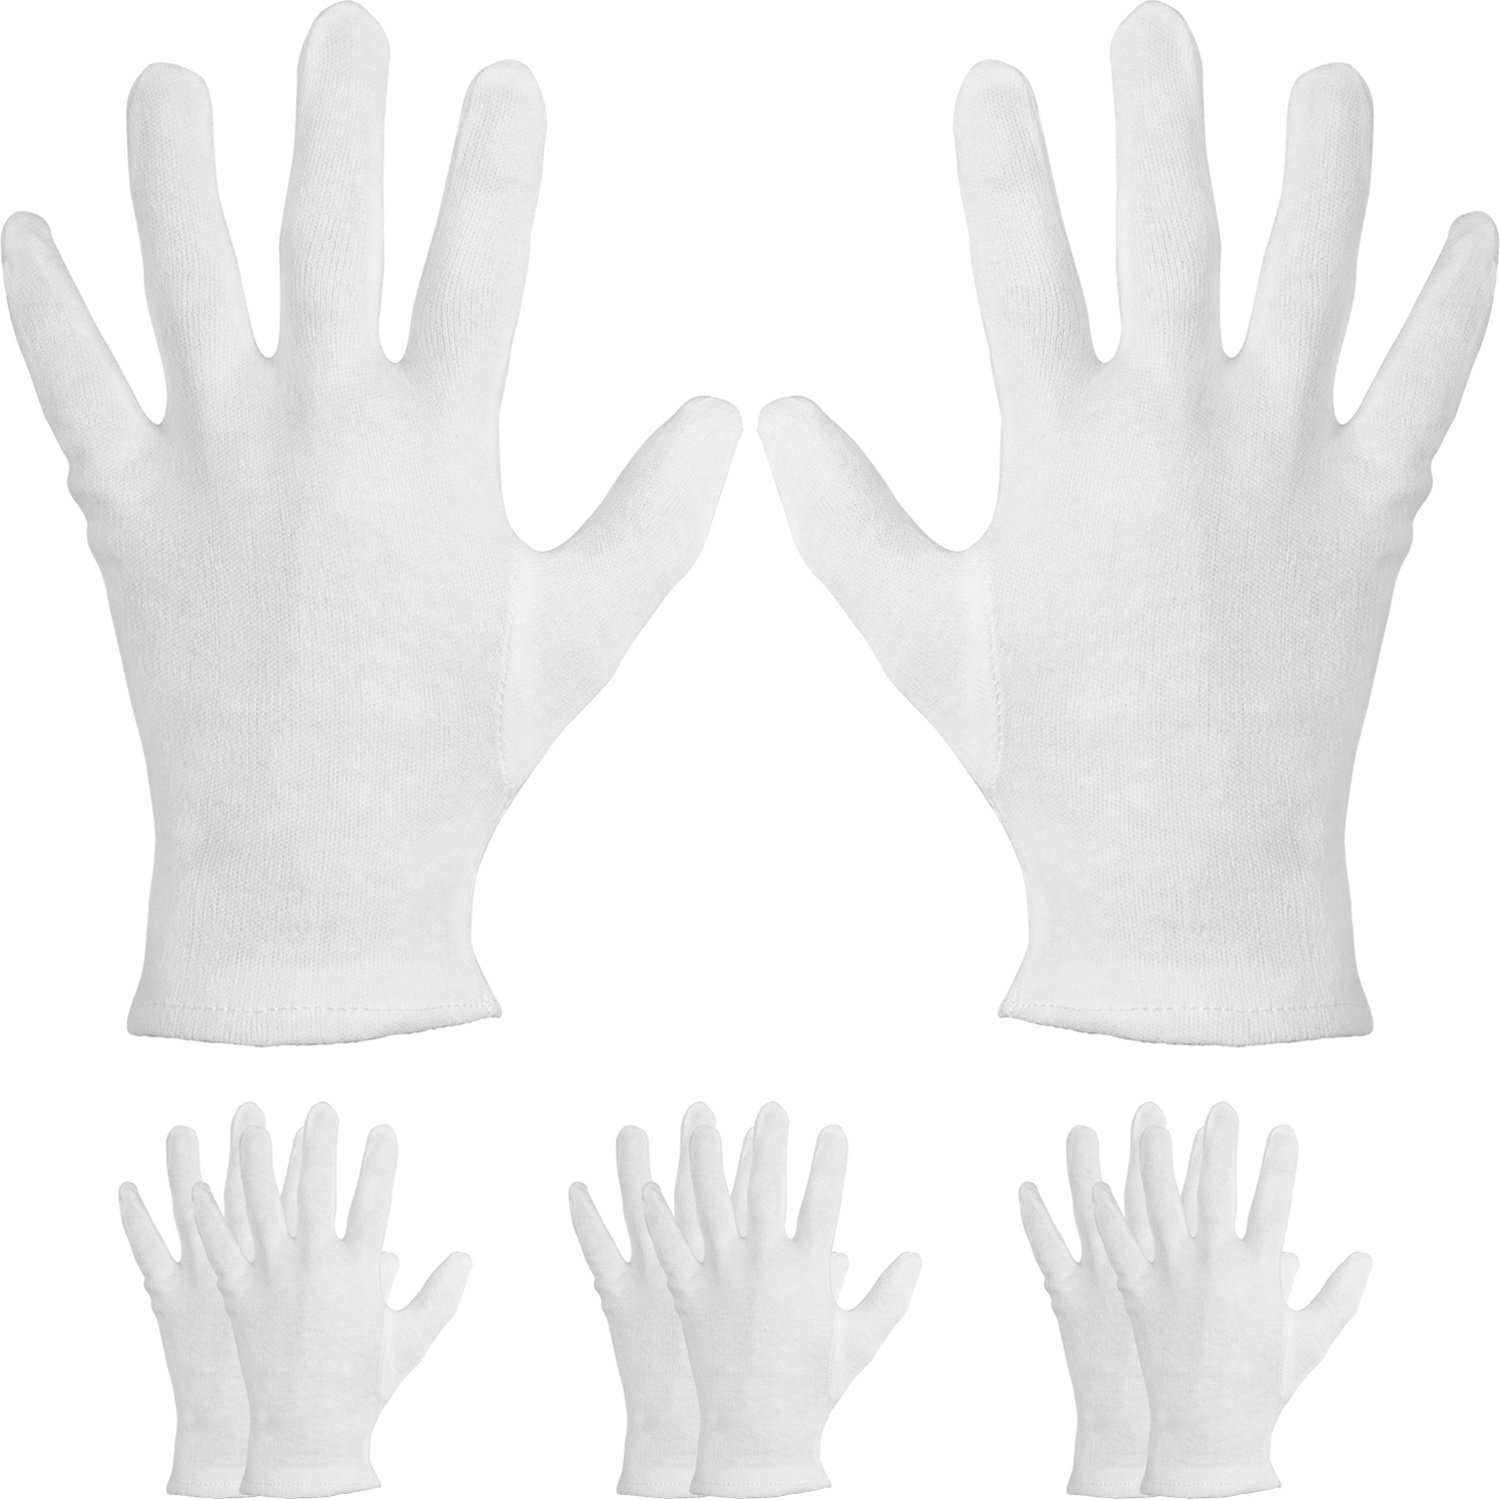 4 Pairs Cotton Moisturizing Gloves Cosmetic Hand Spa Gloves Moisture Enhancing Gloves for Dry Hands, Eczema, White Mudder